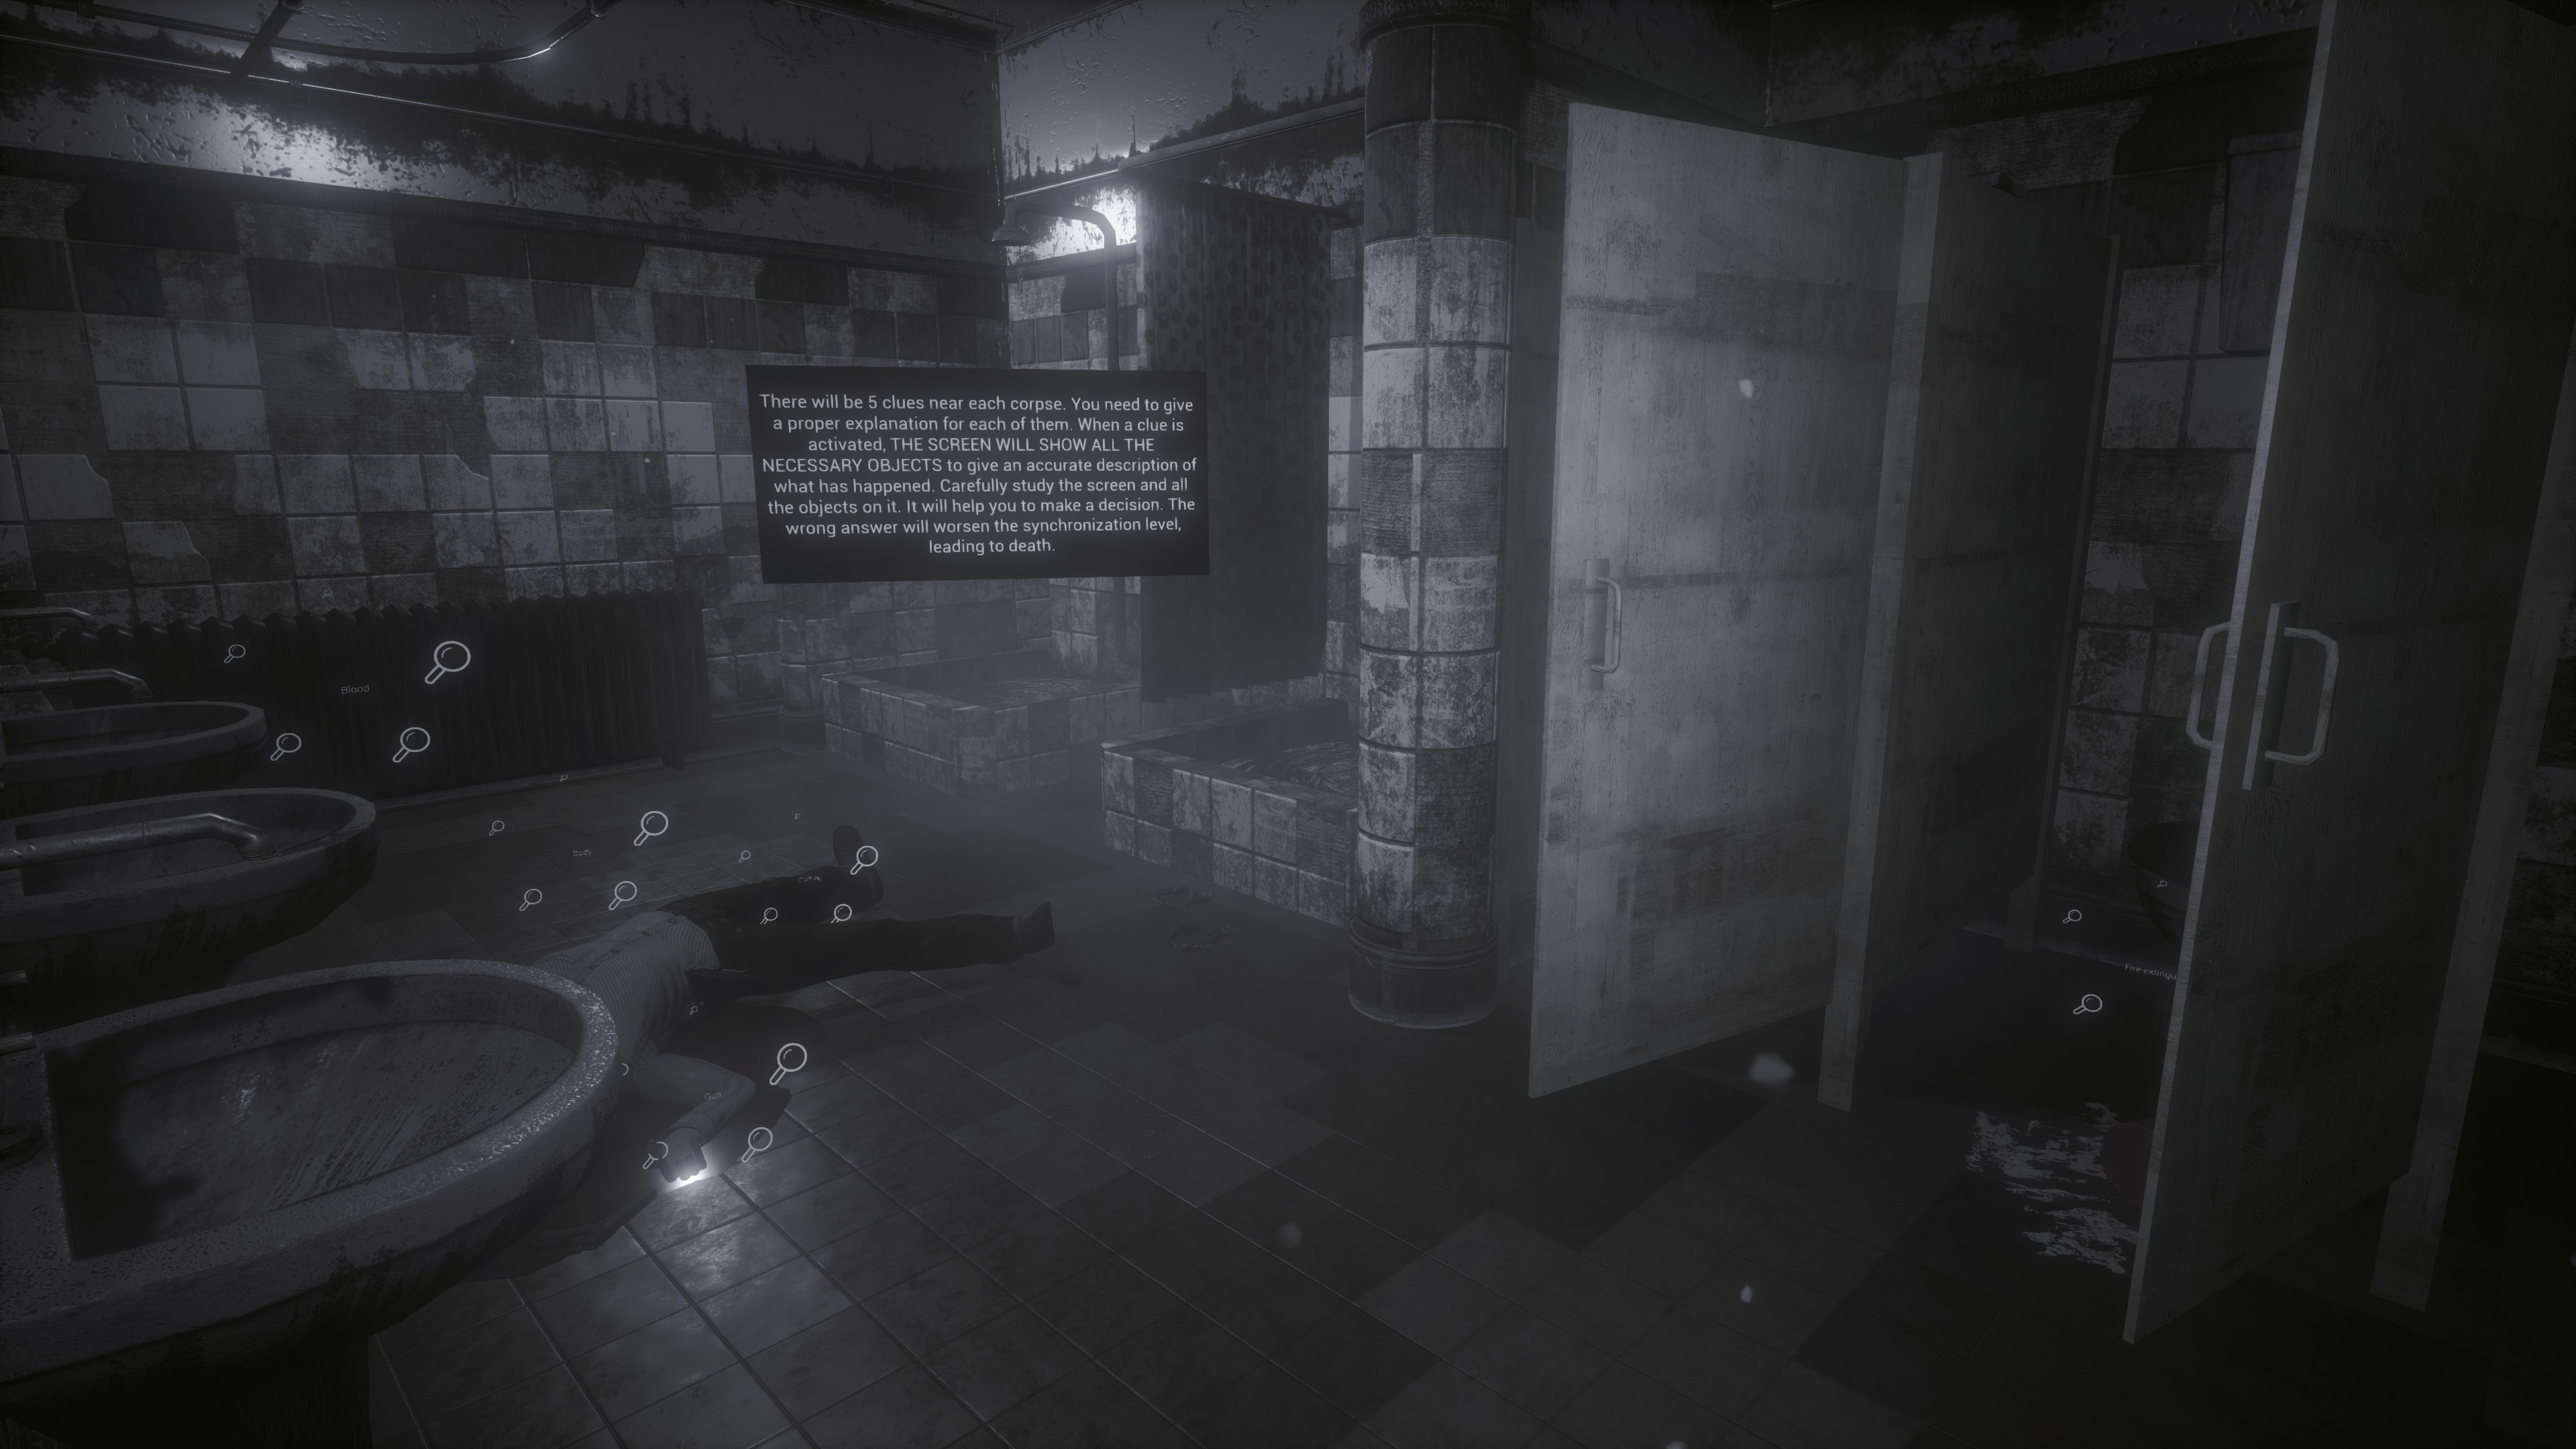 Disgusting bathroom with a male corpse on the floor. Magnifying glass symbols float around the corpse. Floating text over the corpse details how to gather clues around a corpse and that it's necessary to interact with all the objects to progress.